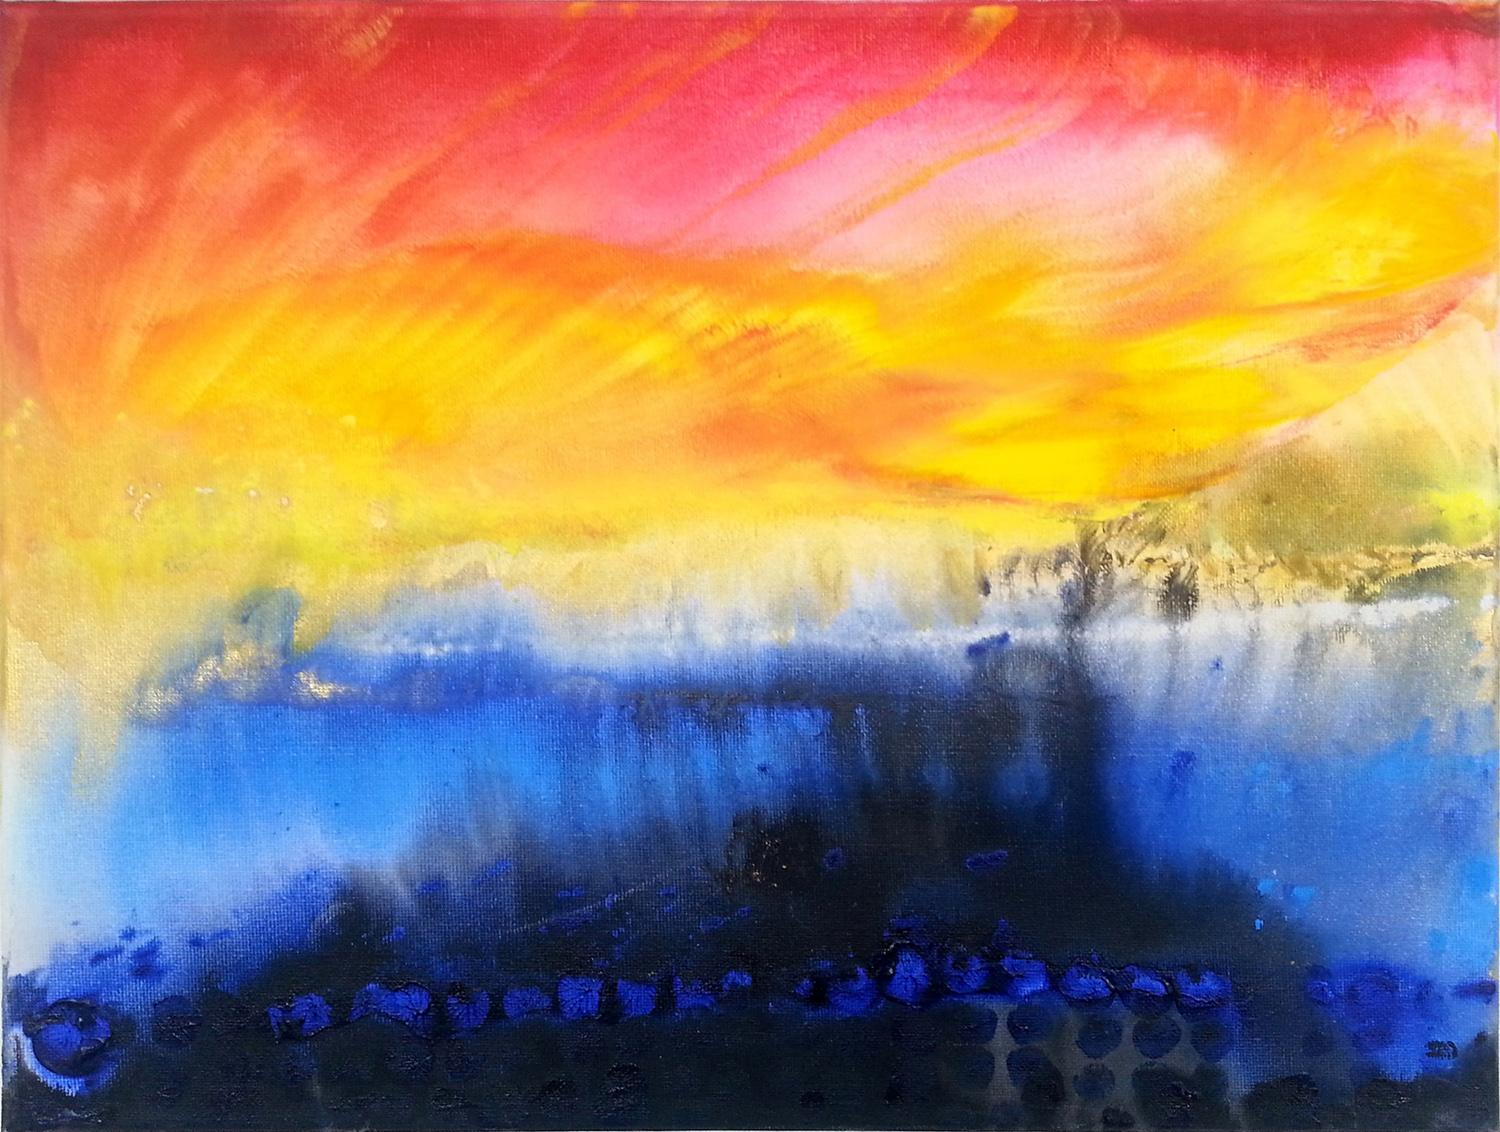 Abstract art yellow blue magenta contemporary painting on canvas 30x40cm